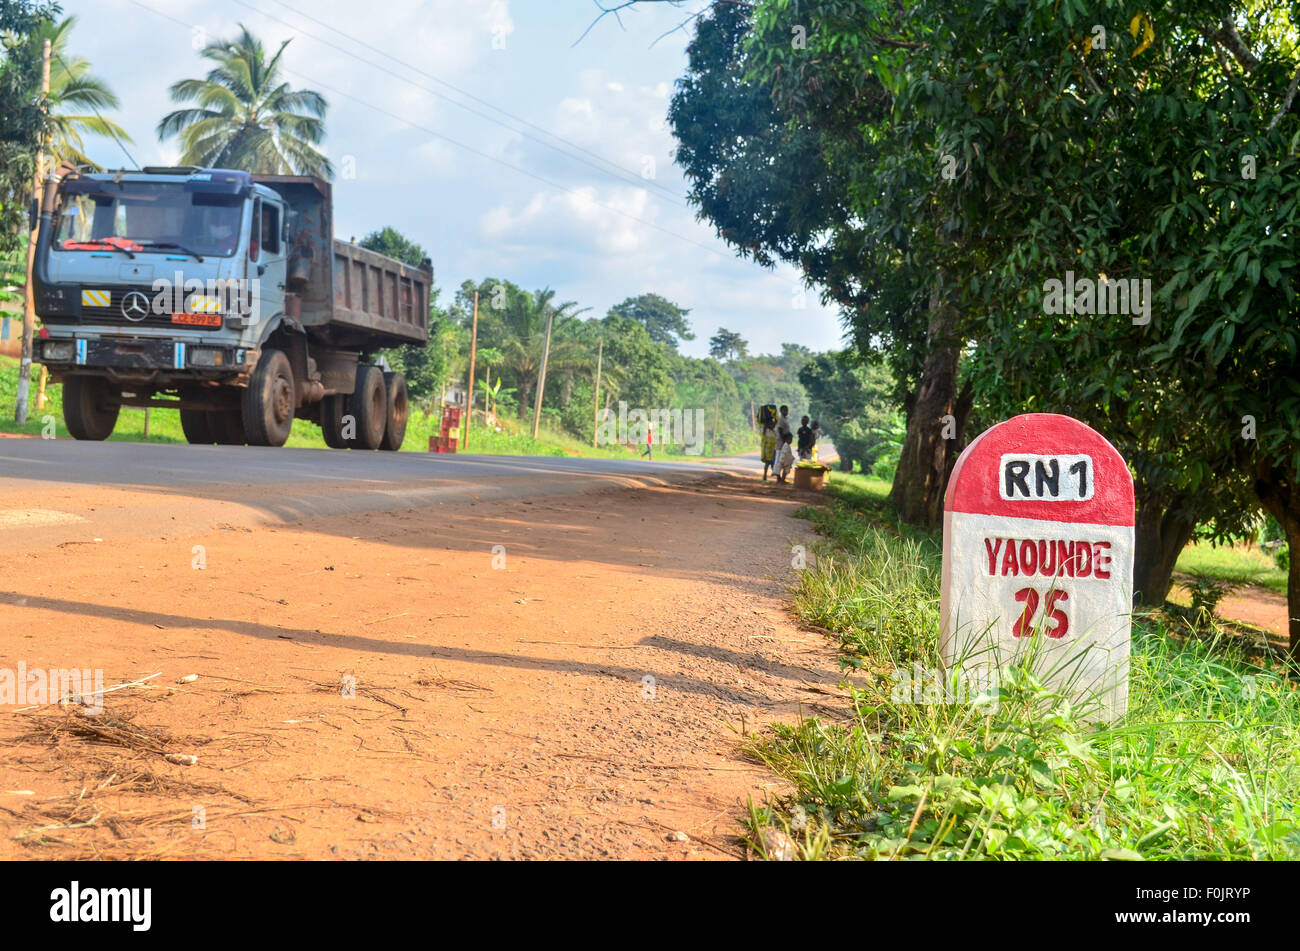 Milestone marking 25 km to Yaoundé, capital city of Cameroon, on the National Road 1 - Stock Image